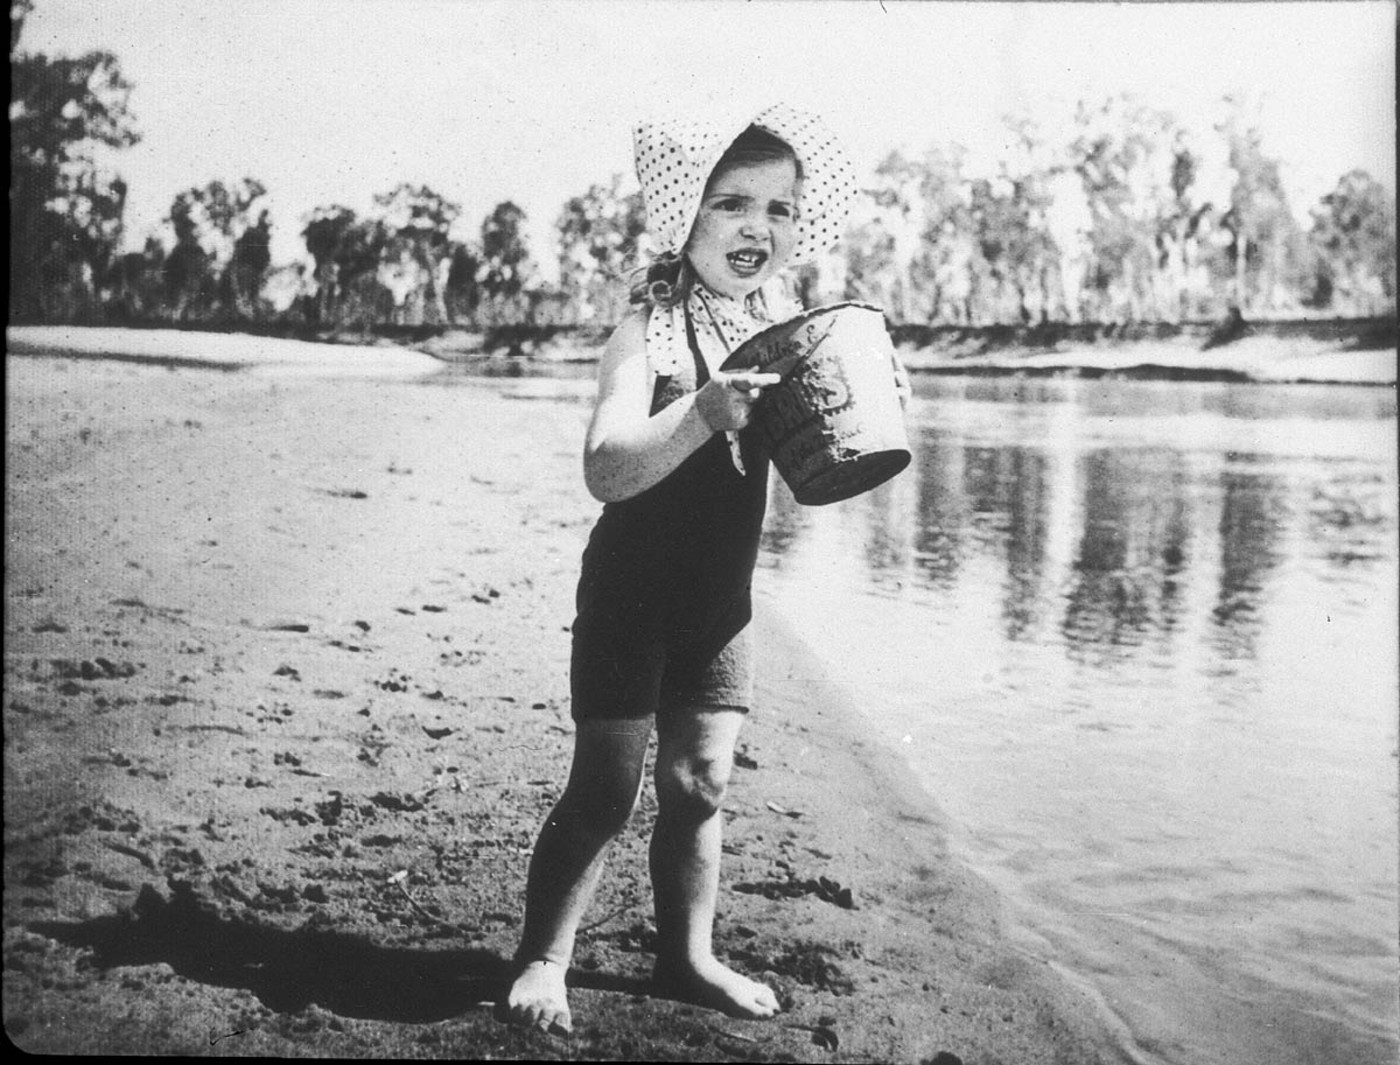 Girl (Meredith Binns) on the Murray River. The bucket advertises